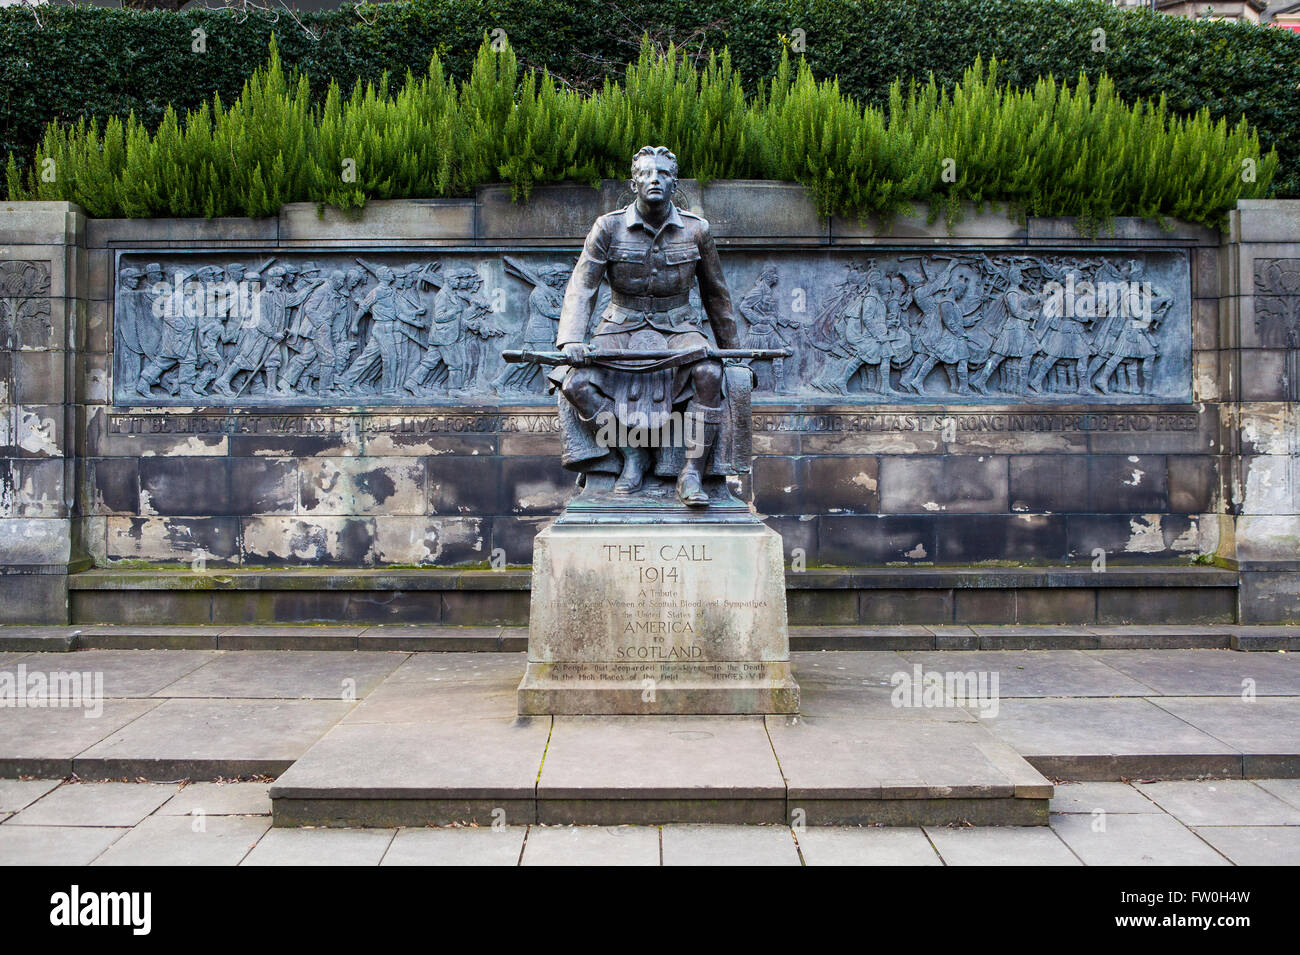 EDINBURGH, SCOTLAND - MARCH 10TH 2016: A view of the Scottish American Memorial in West Princes Street Gardens, Stock Photo